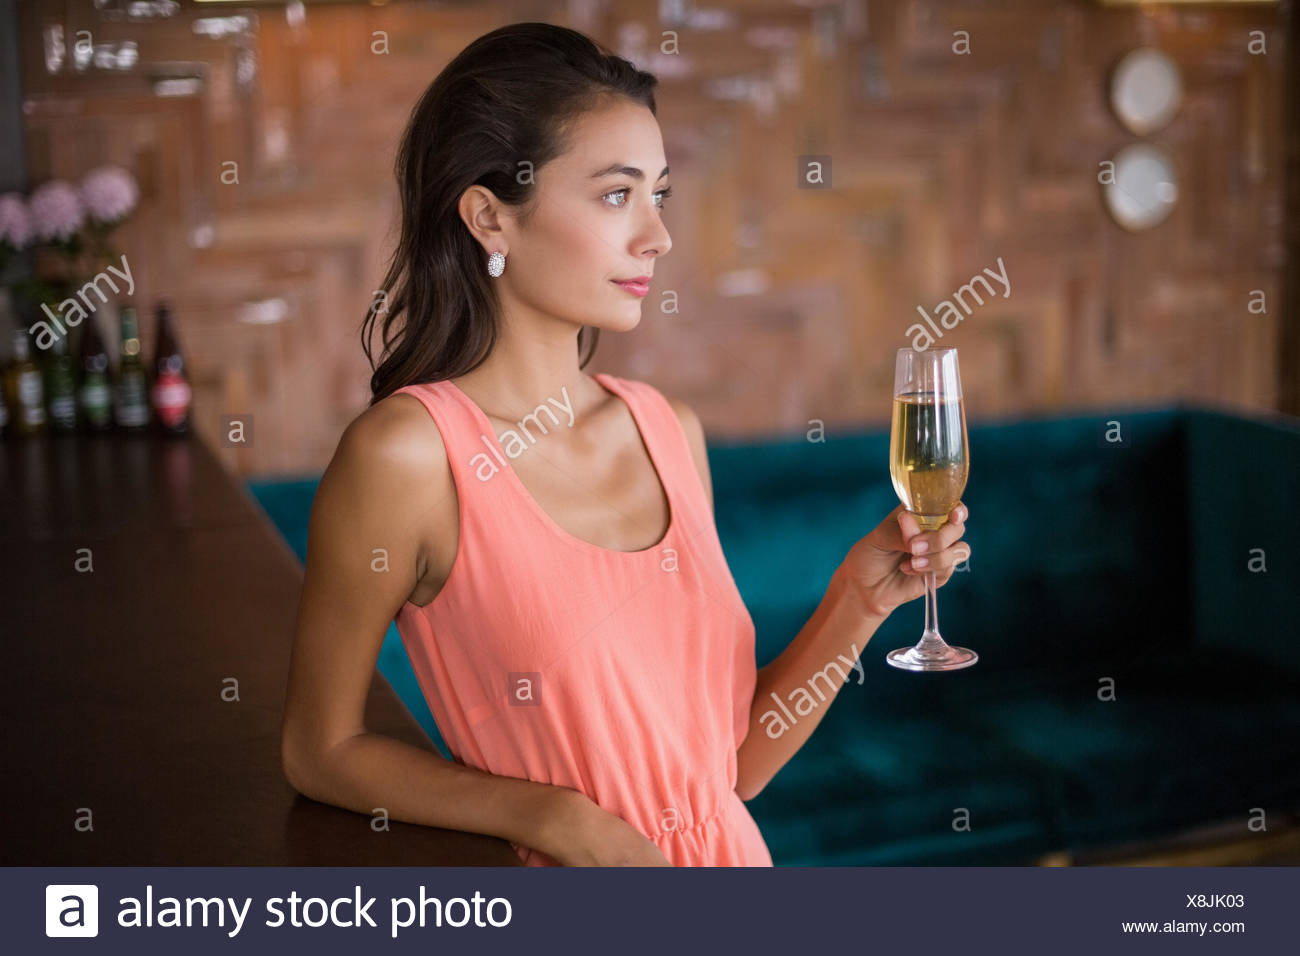 Beautiful woman holding a champagne flute - Stock Image